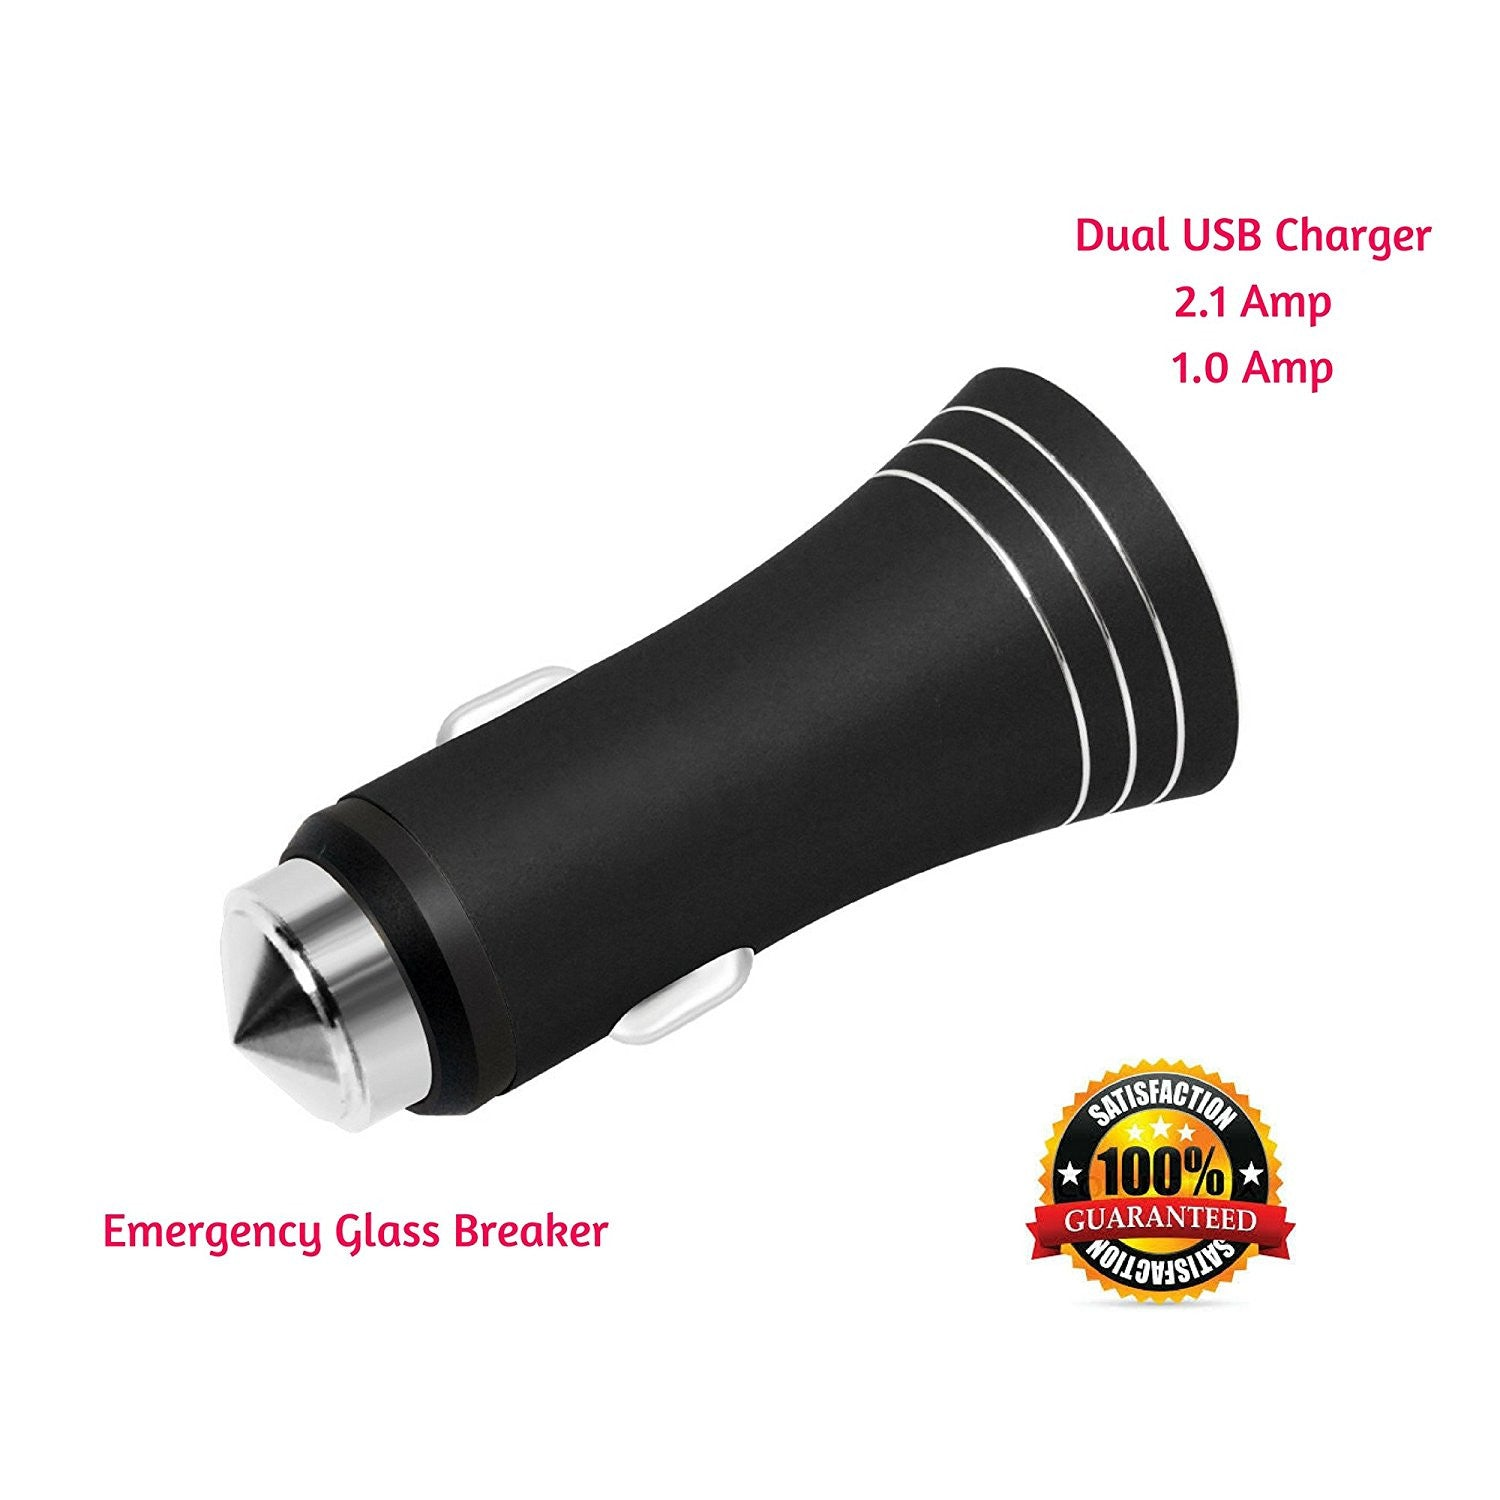 Car Charger with Dual USB Ports for charging and Steel Glassbreaker Hammer for Emergency Escape